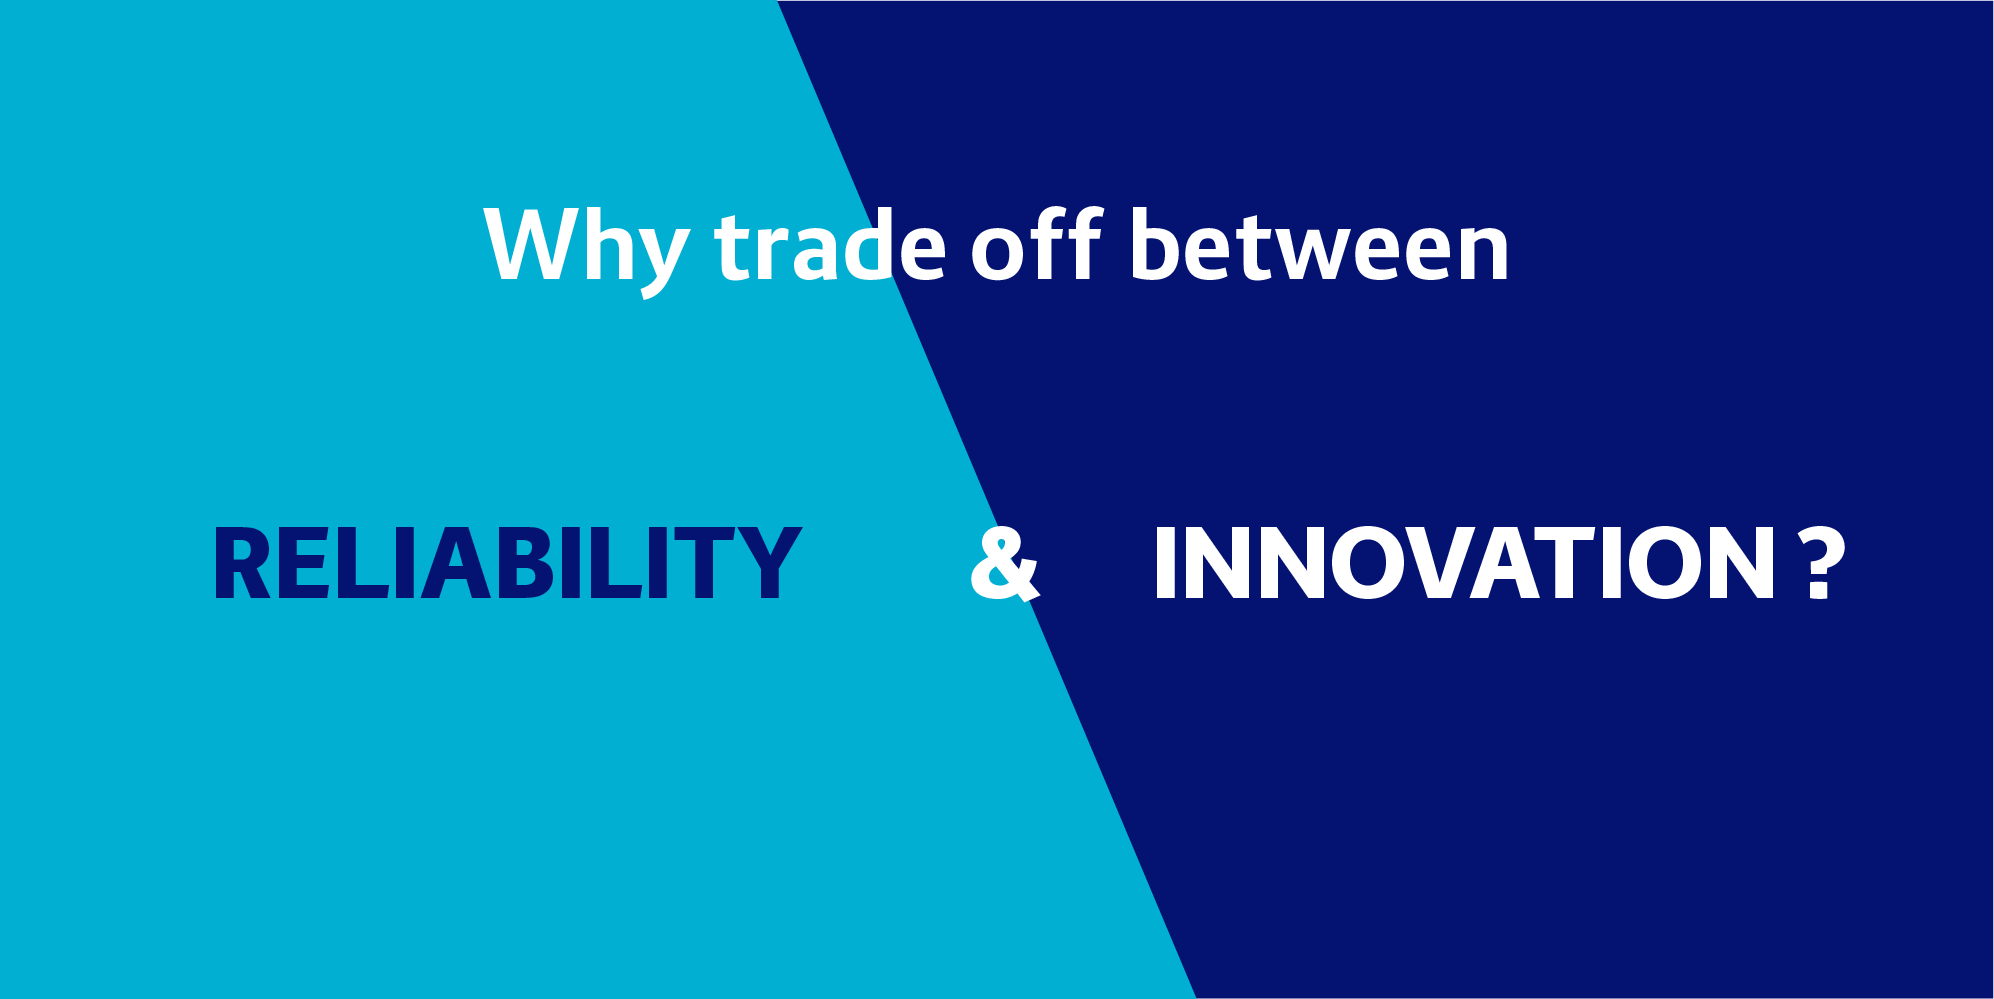 why trade off between reliability and innovation?